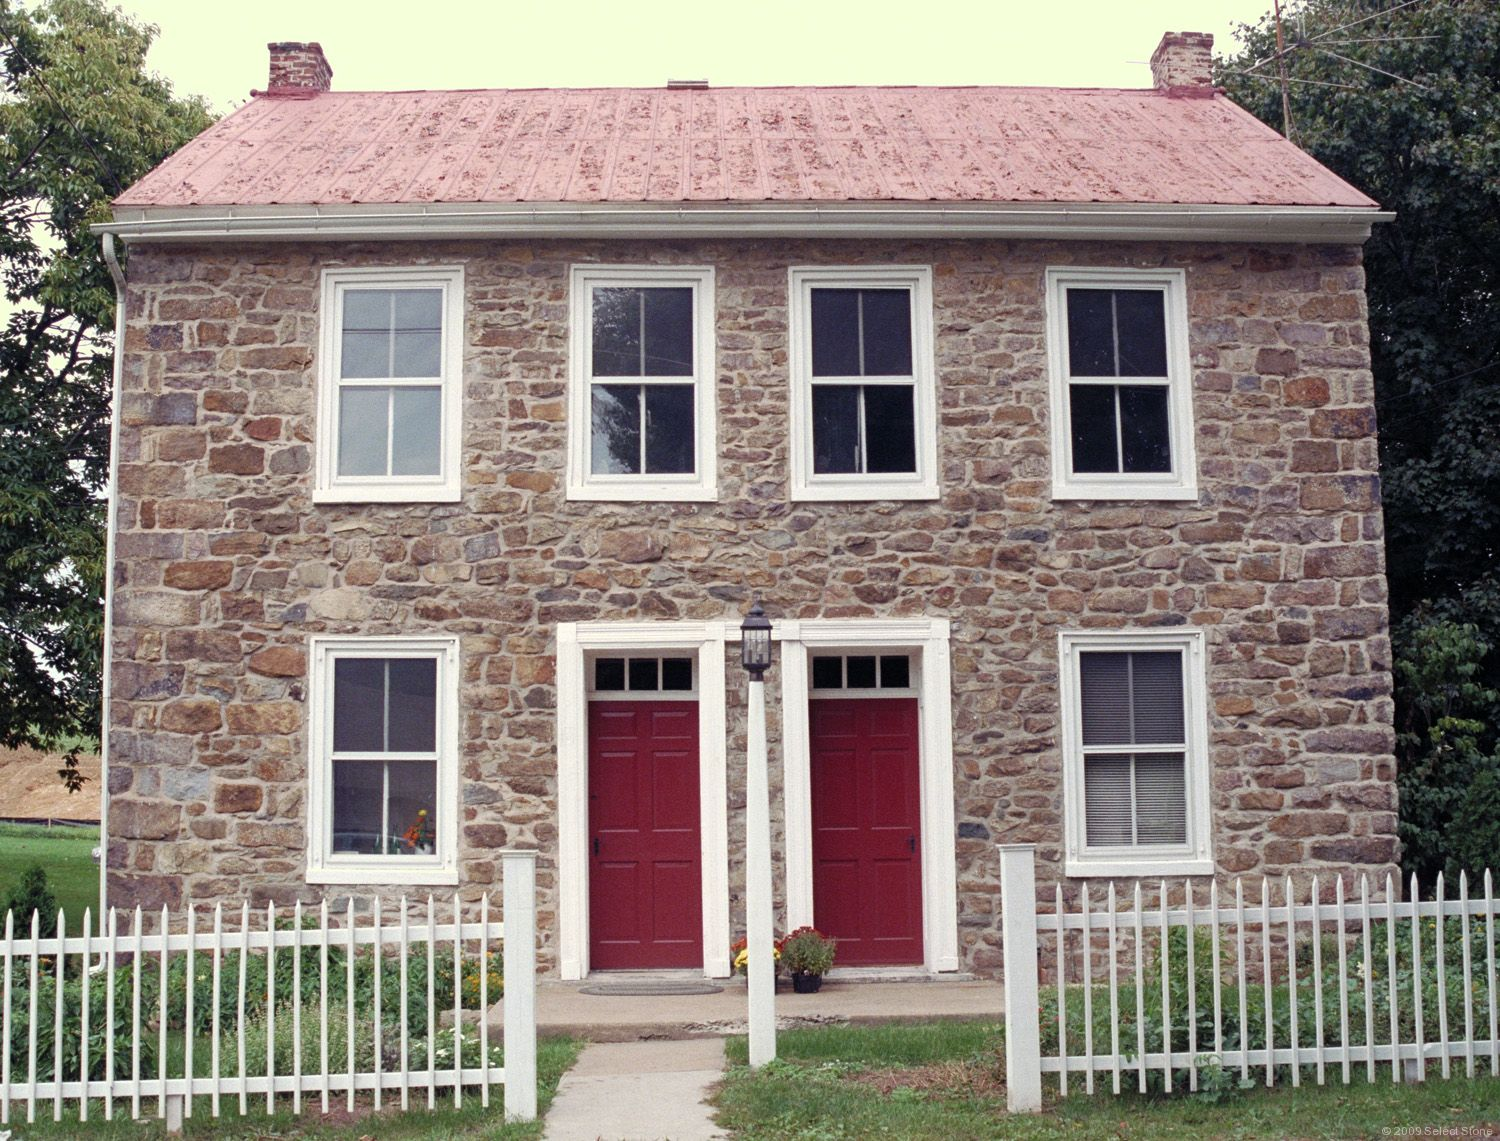 A very symmetrical fieldstone house. Did they build duplexes in the18th-  and 19th-